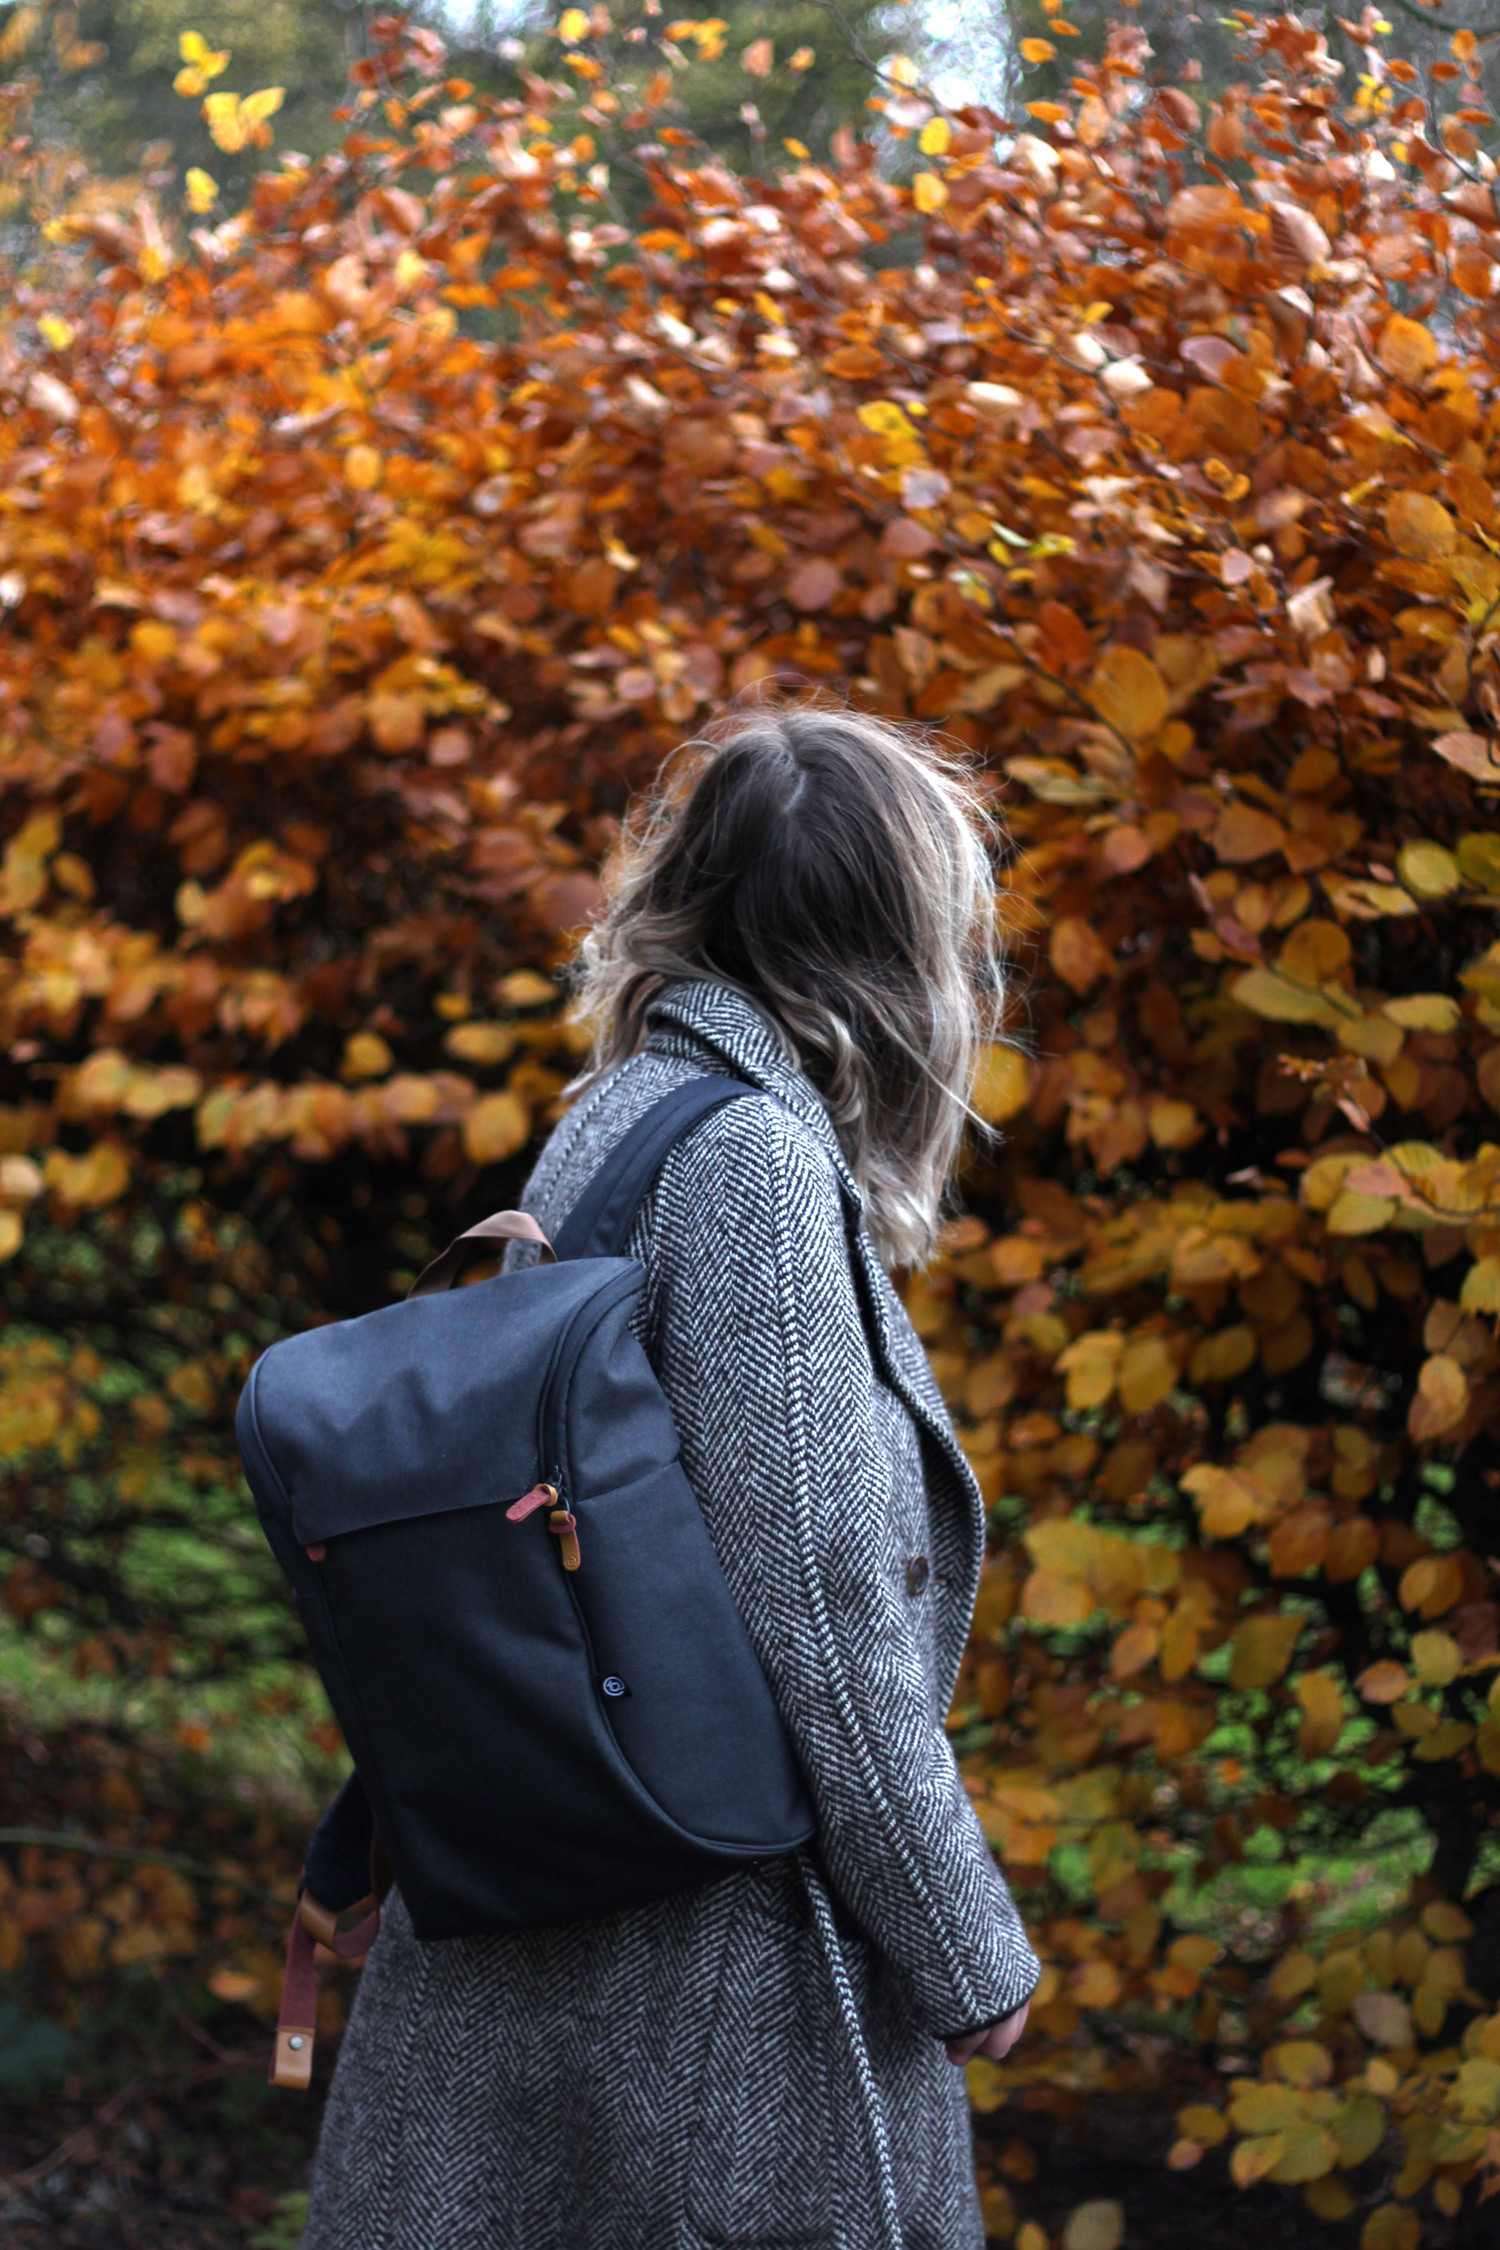 booq-grey-backpack-autumn-outfit-chloe-coat-acne-jensen-8